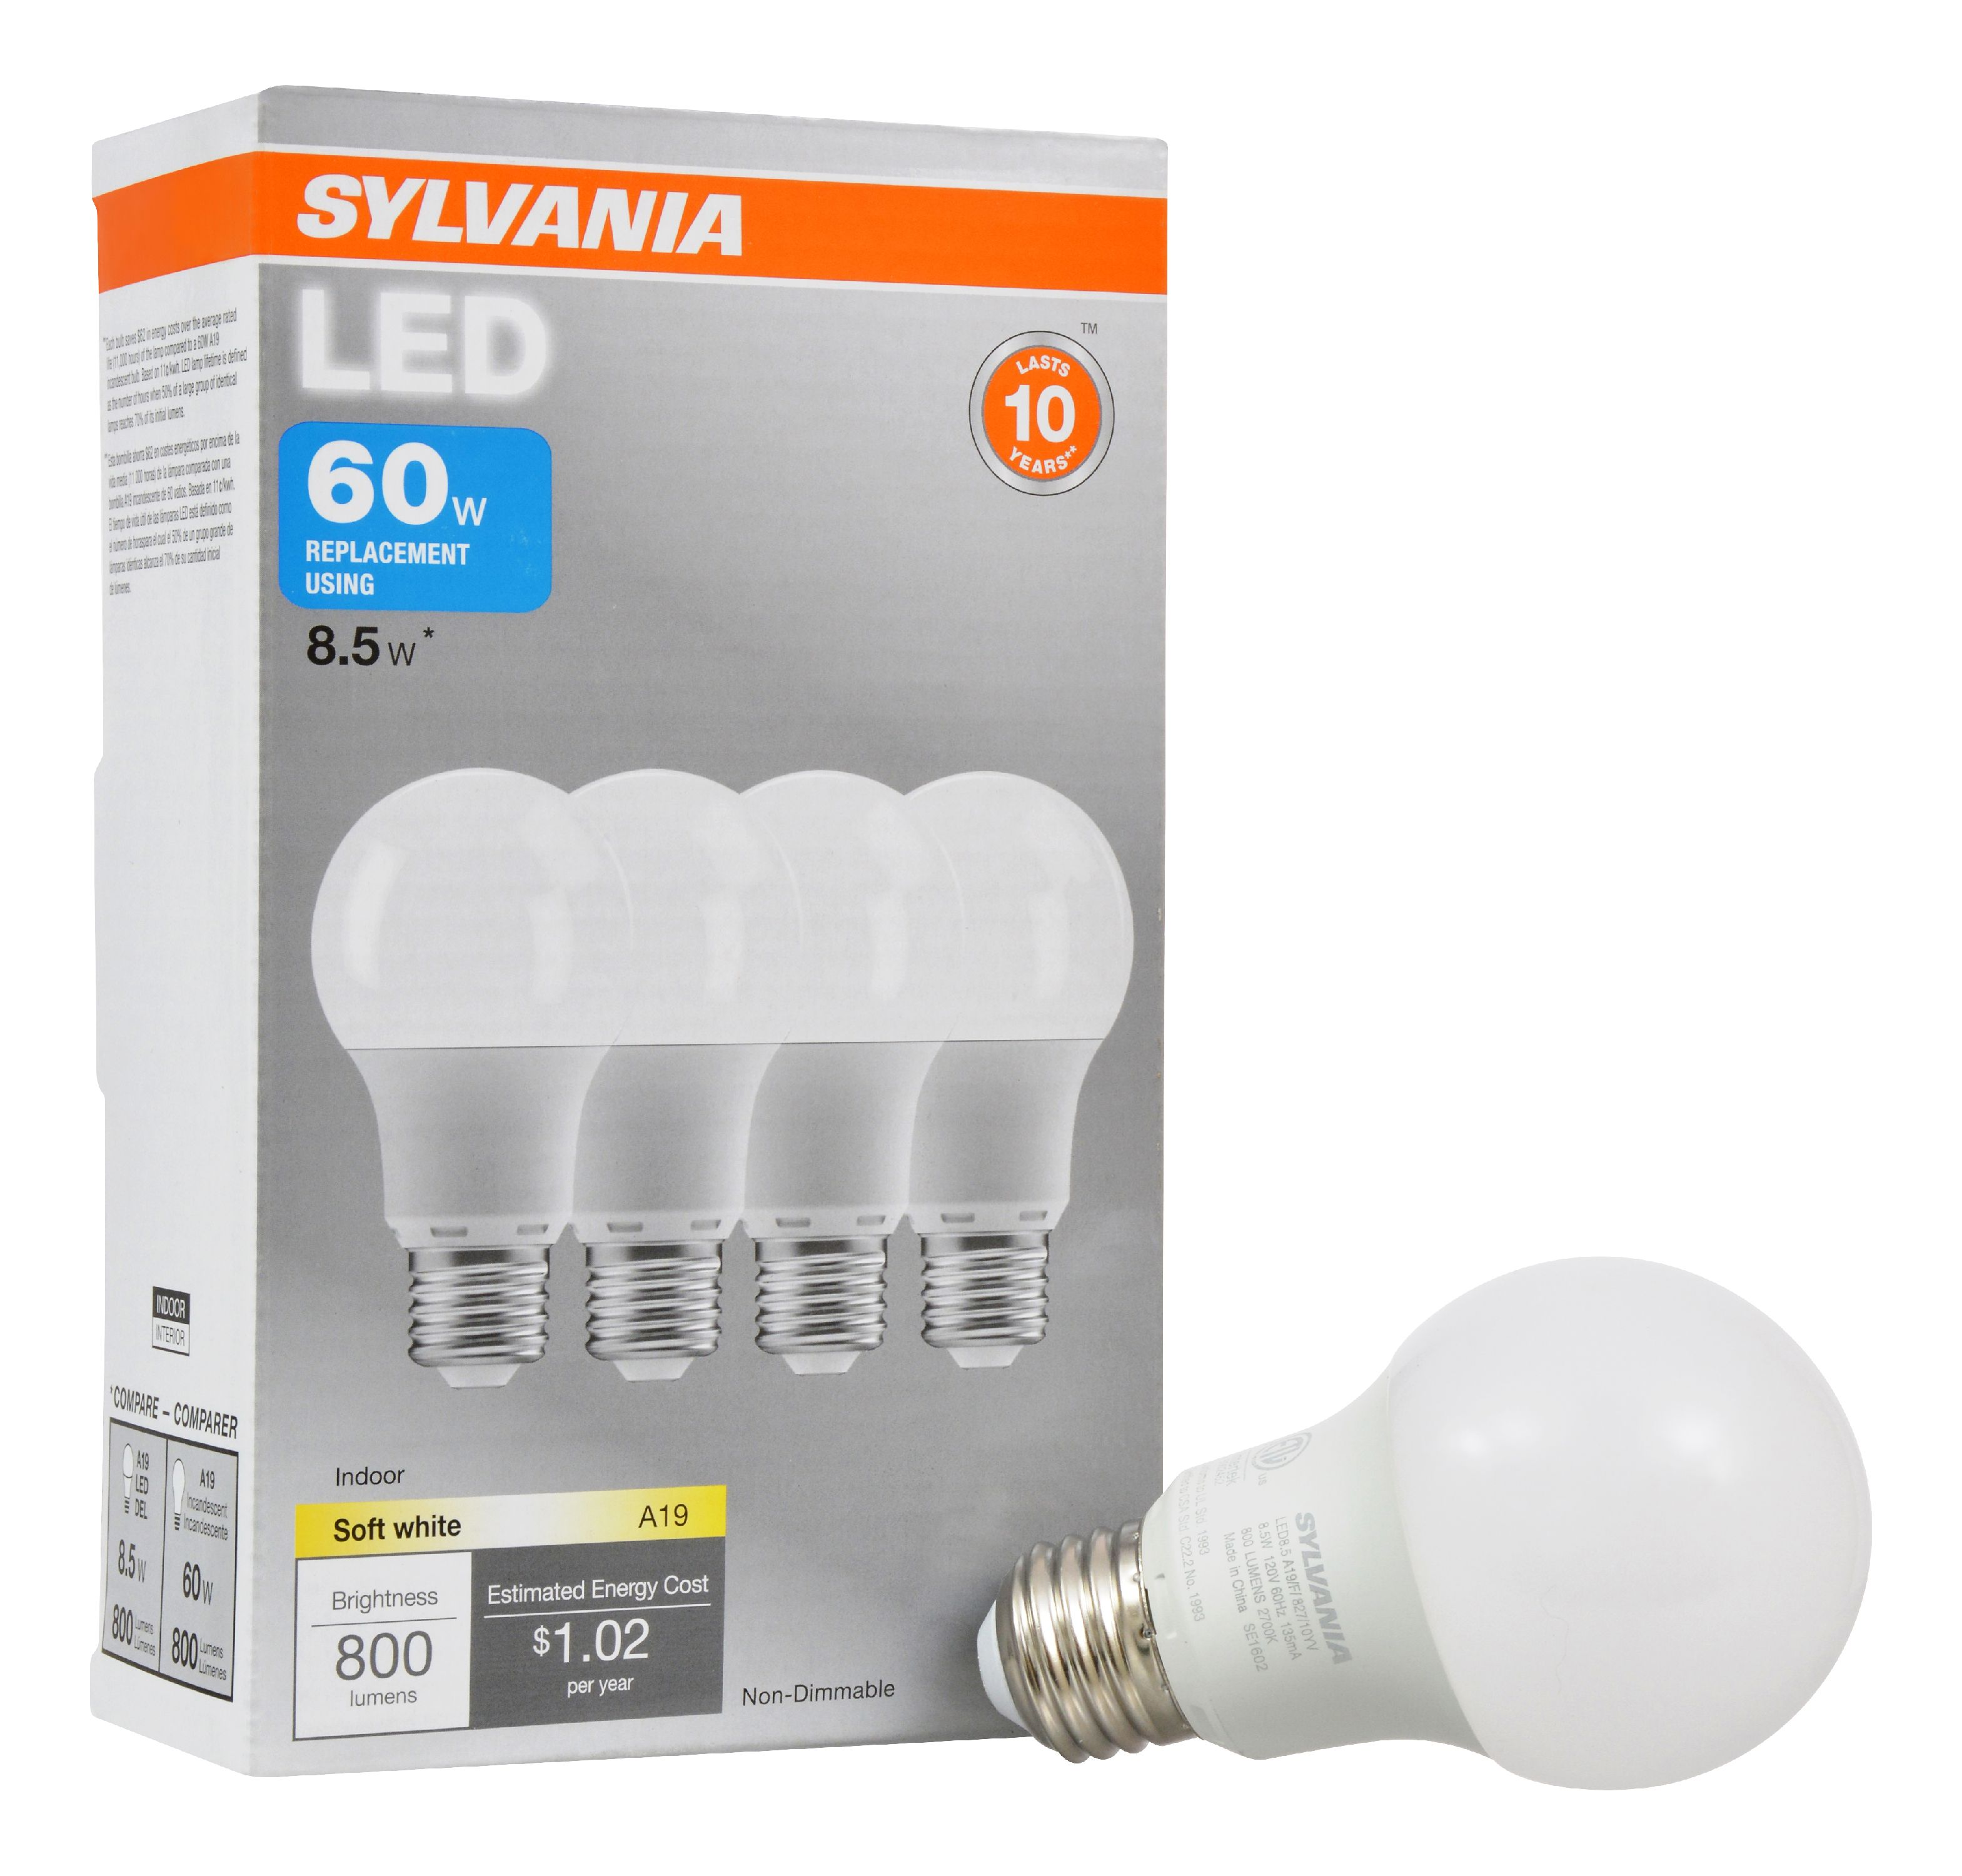 Lovely Sylvania LED Light Bulbs, 8.5W (60W Equivalent) Soft White, 4  Images